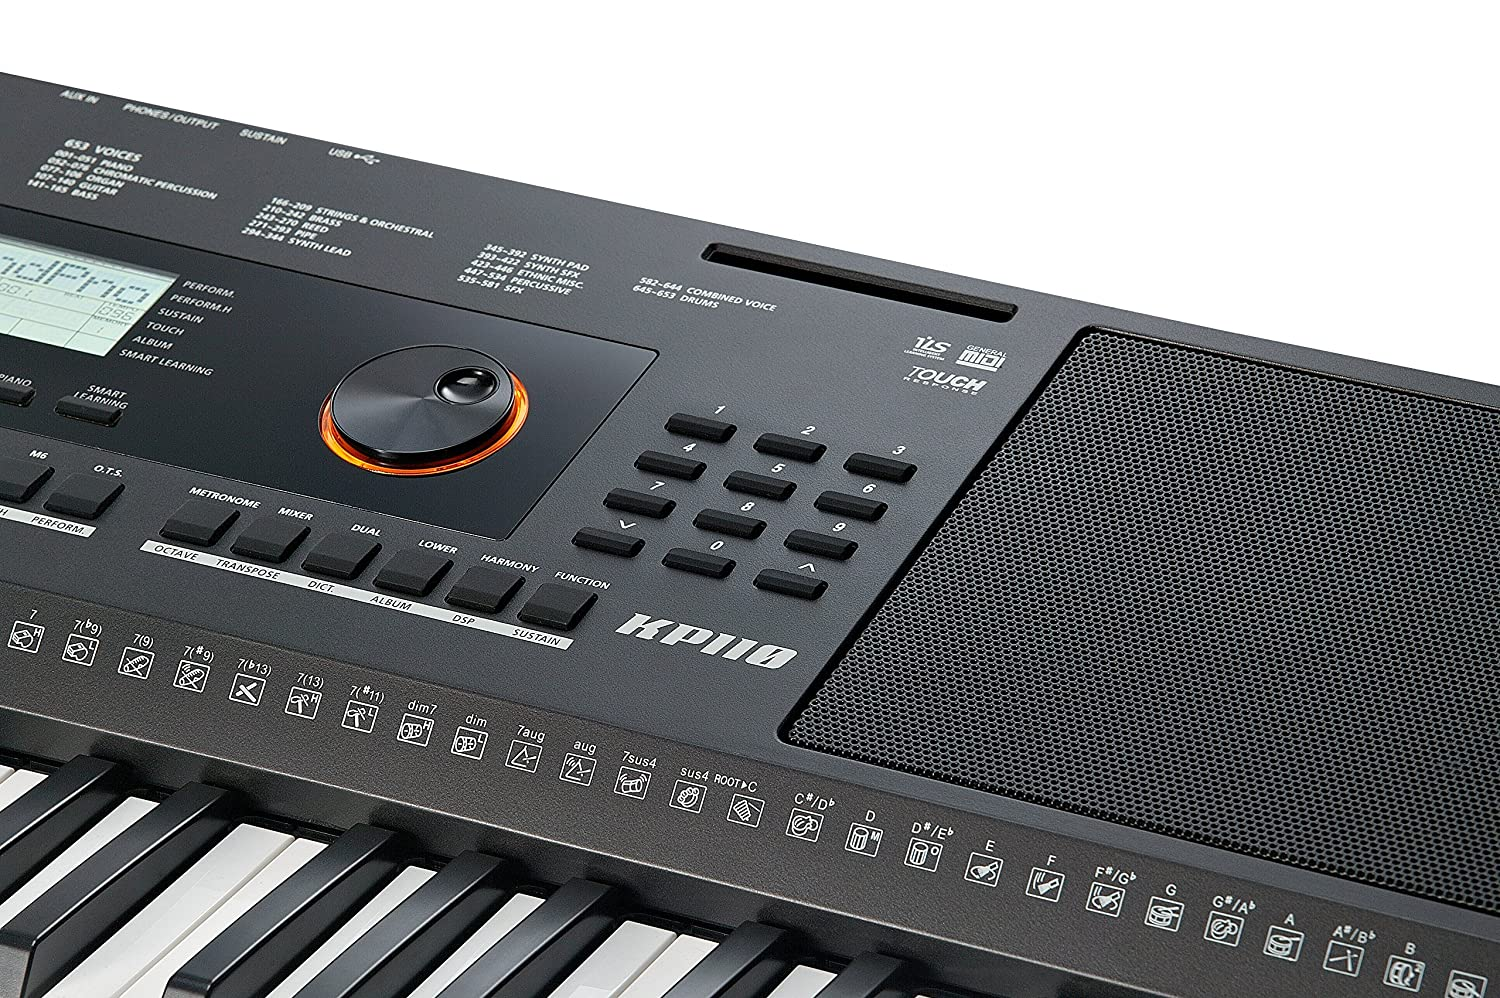 Amazon.com: Kurzweil Home KP110 61-Note Portable Arranger Keyboard with Performance Assistant (KP-110): Musical Instruments